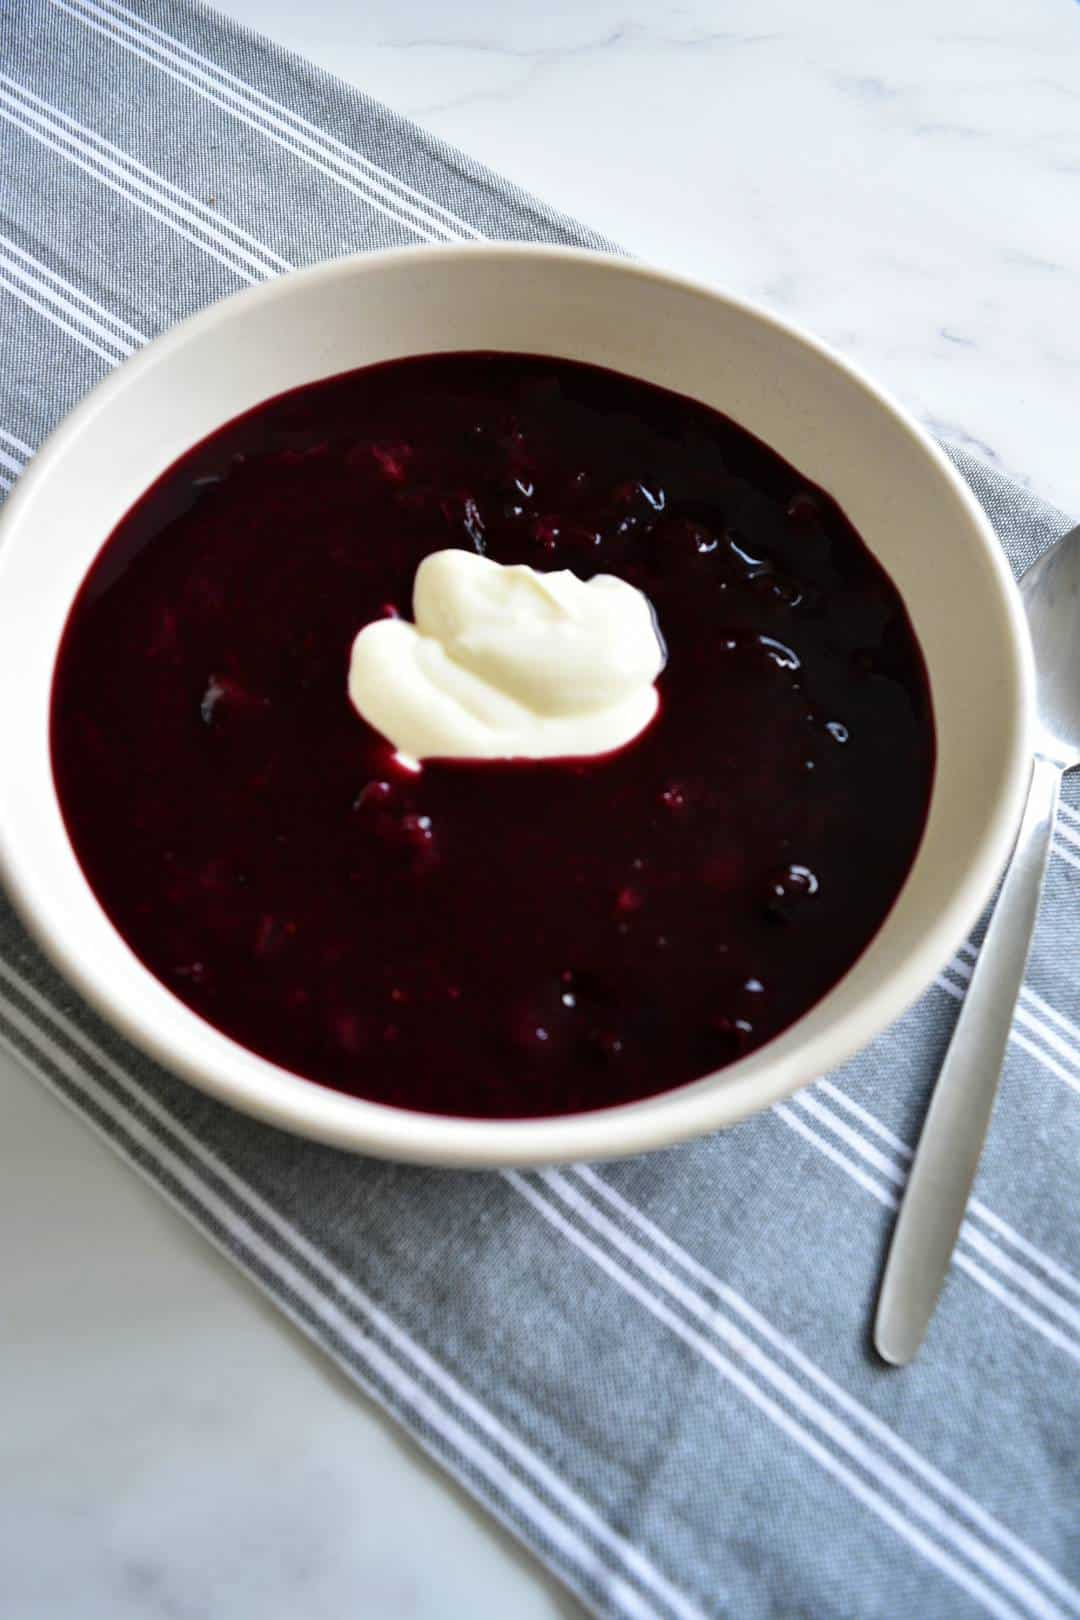 Blueberry soup topped with yogurt in a white bowl with a spoon on the side.